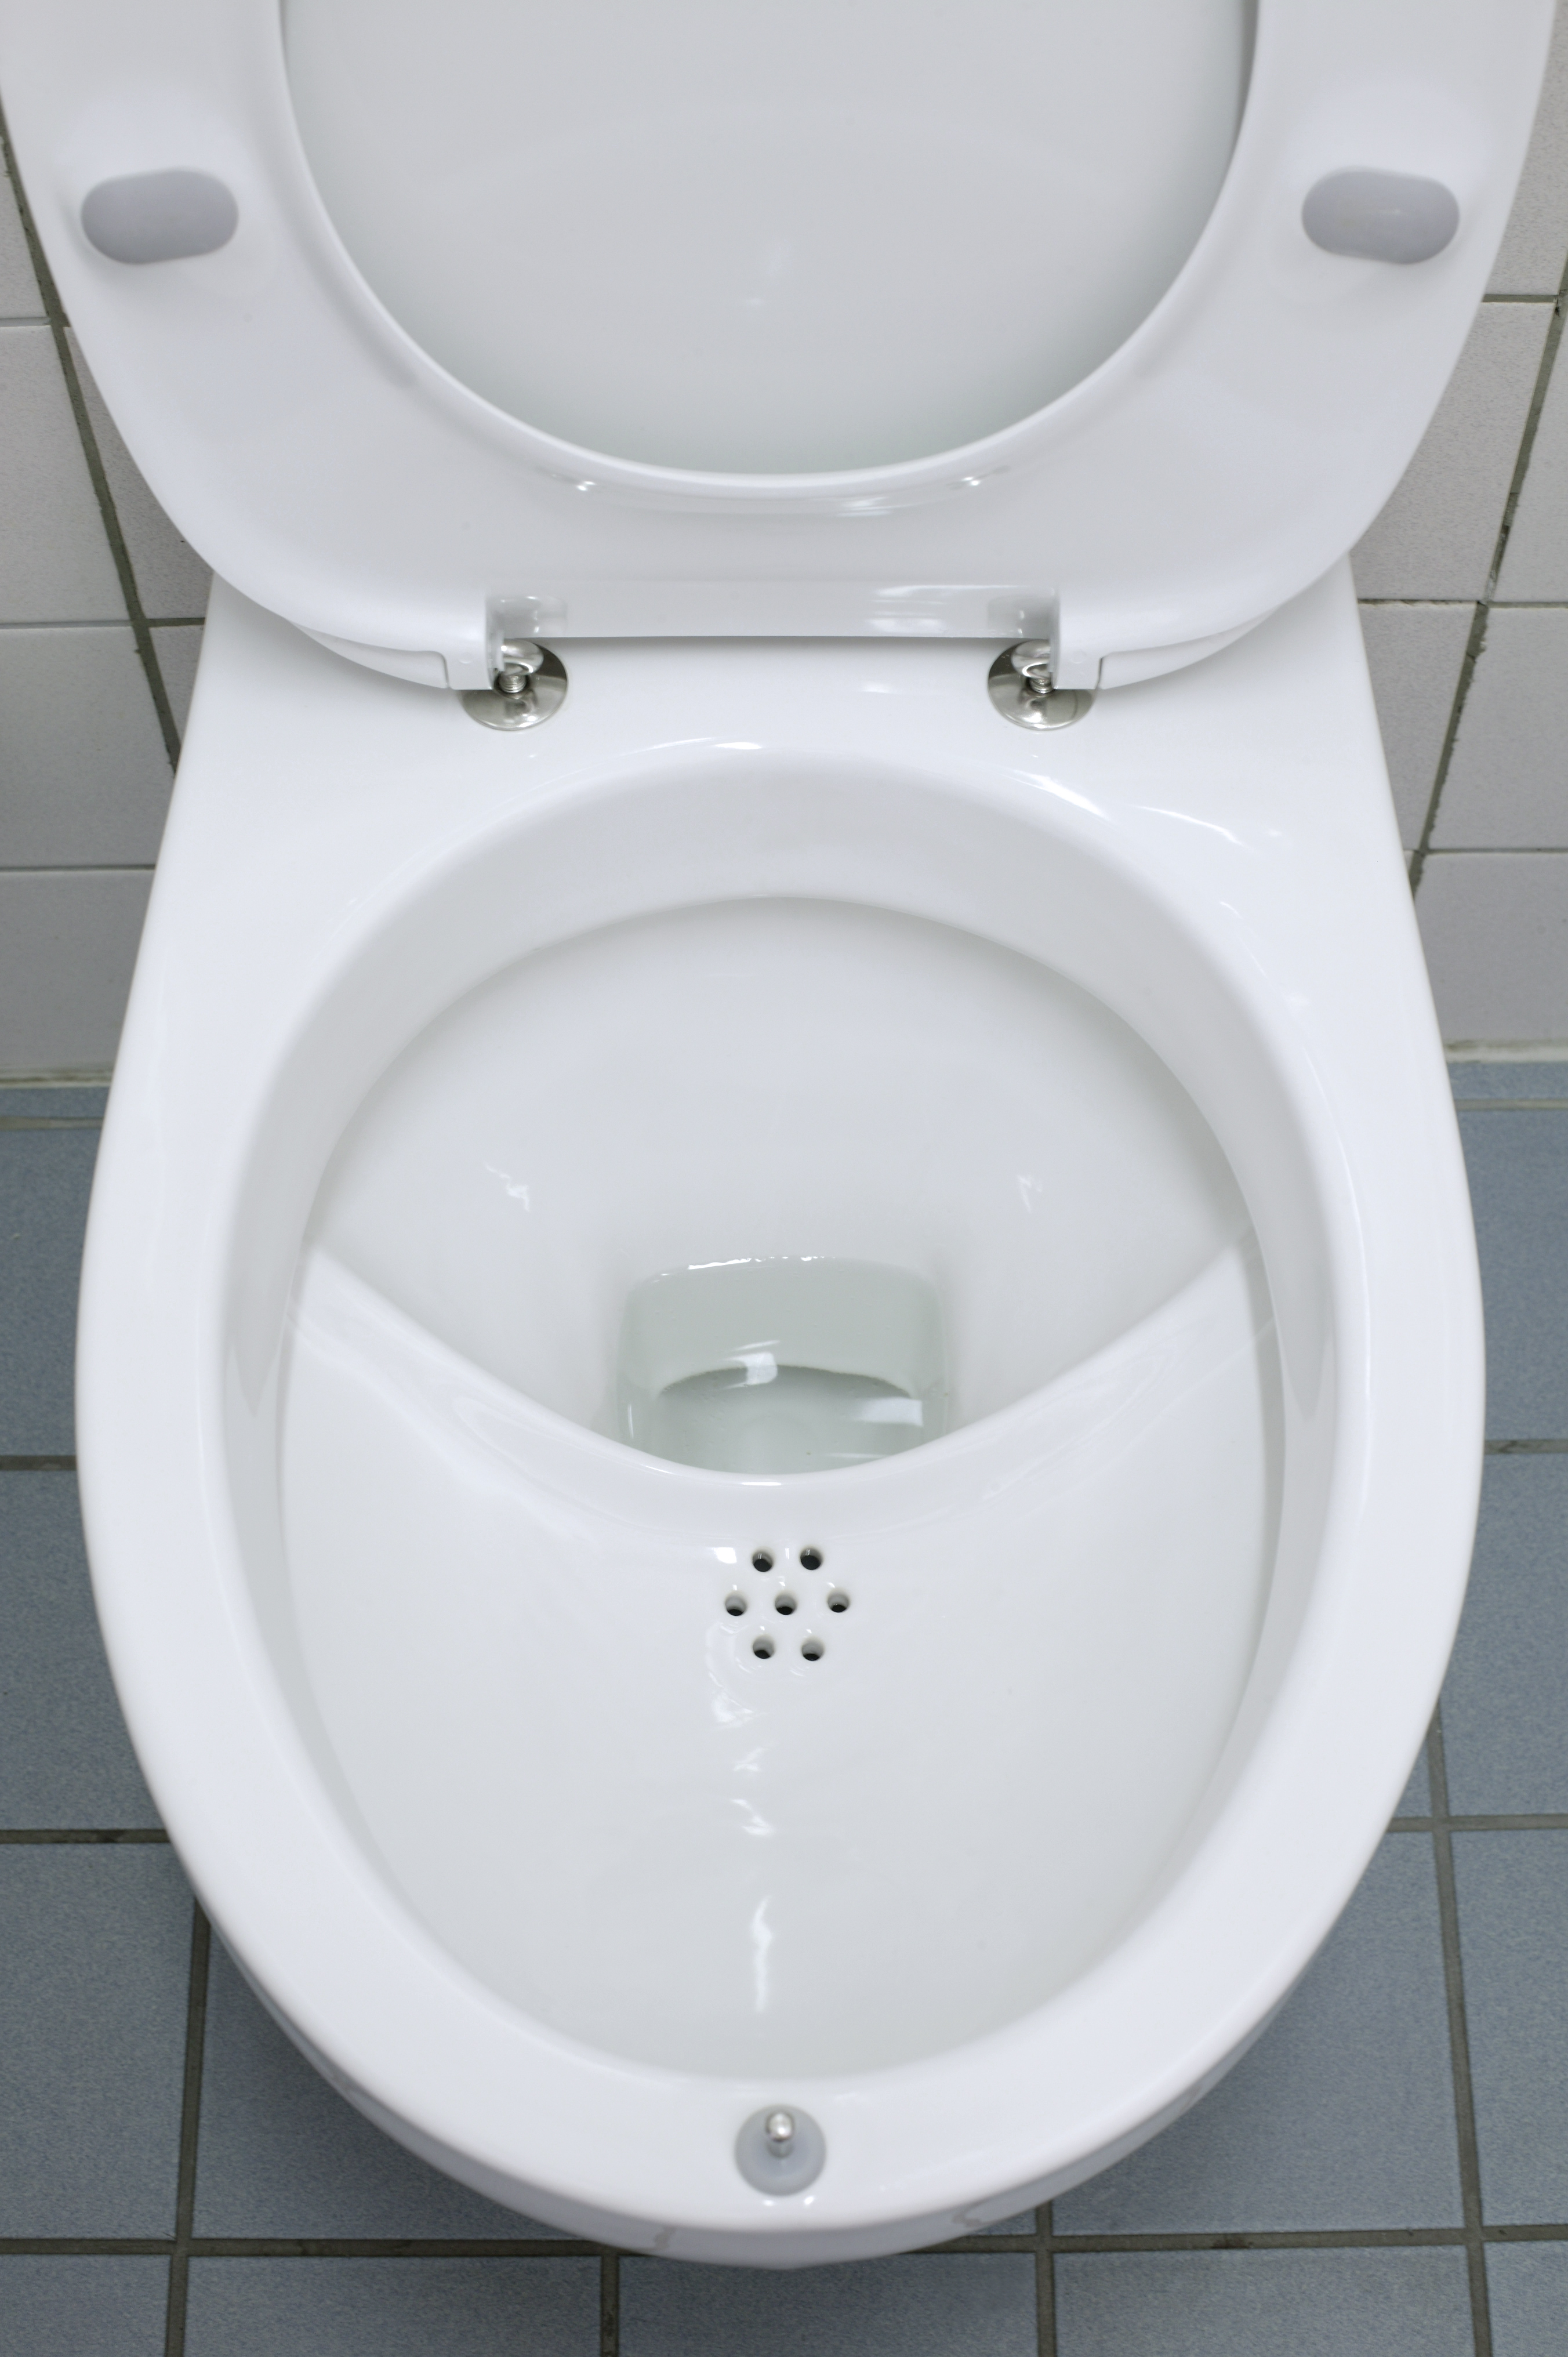 File roediger nomix toilet 3331066762 jpg wikimedia for Vater con bidet